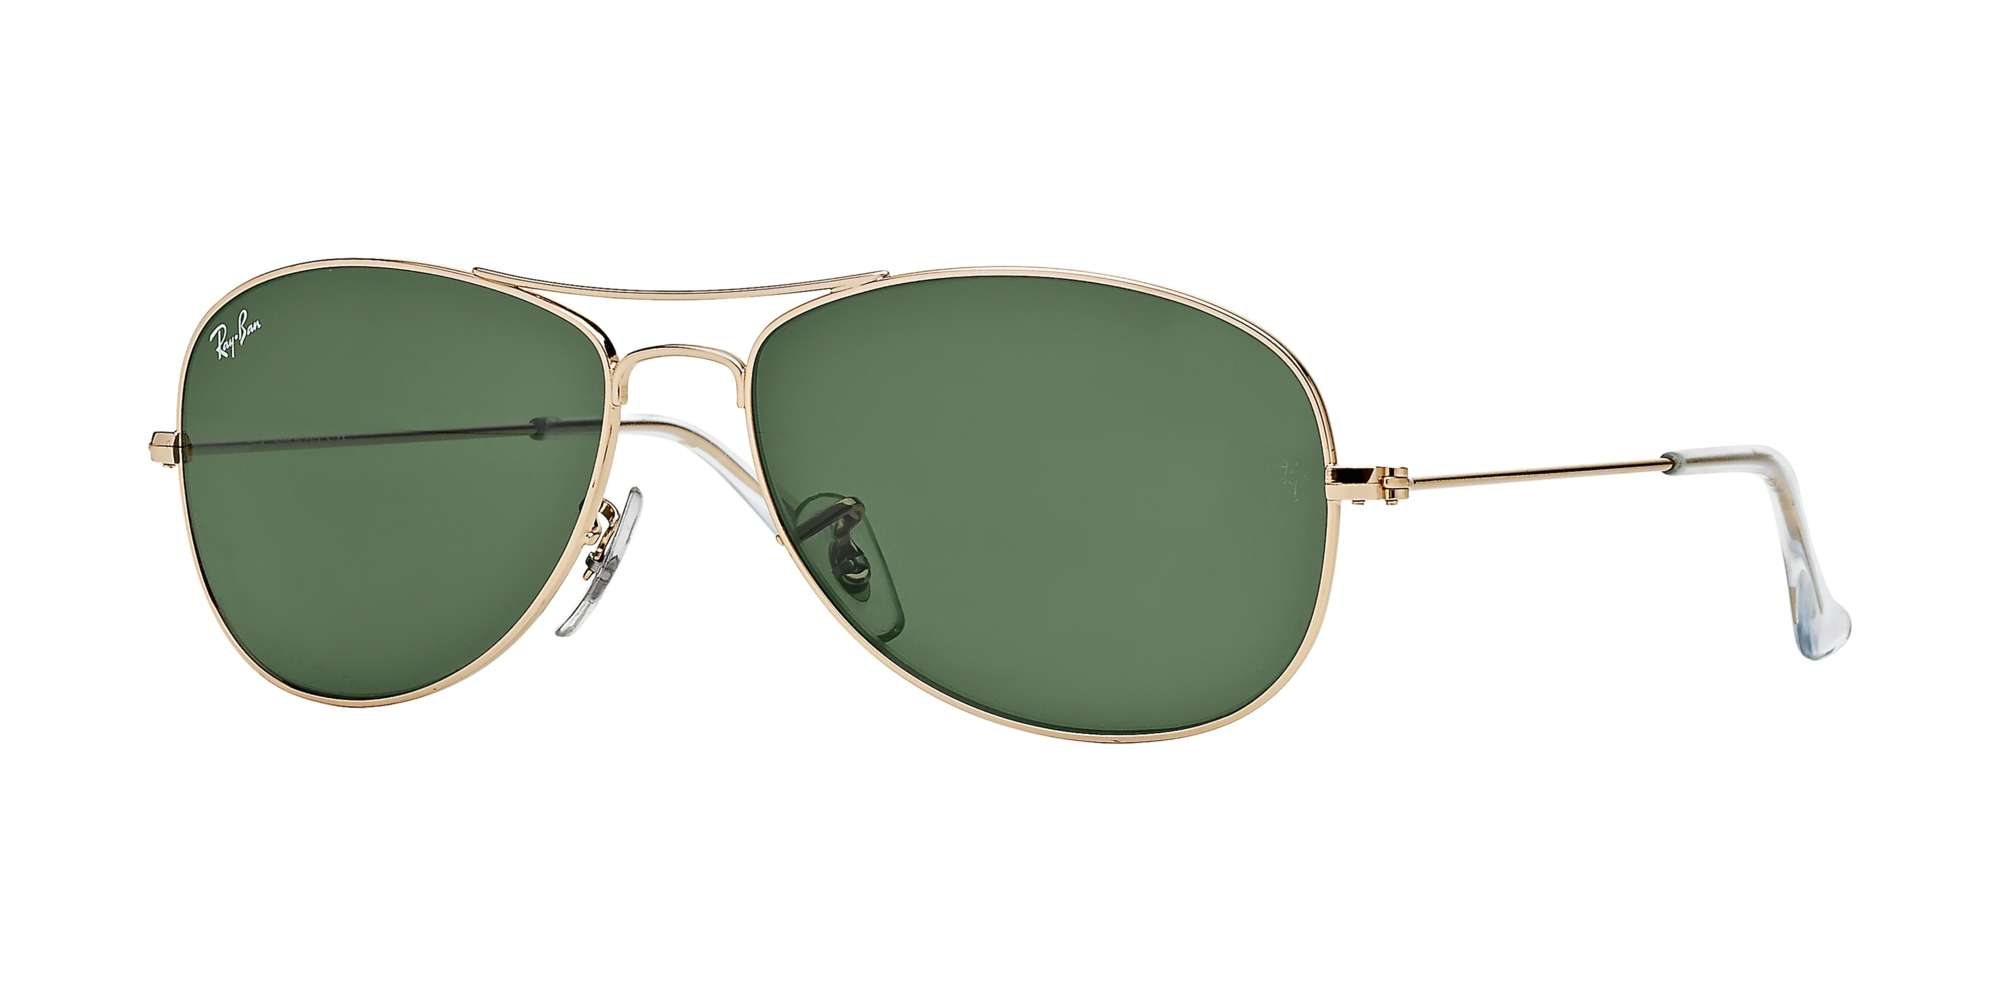 ARISTA / CRYSTAL GREEN lenses